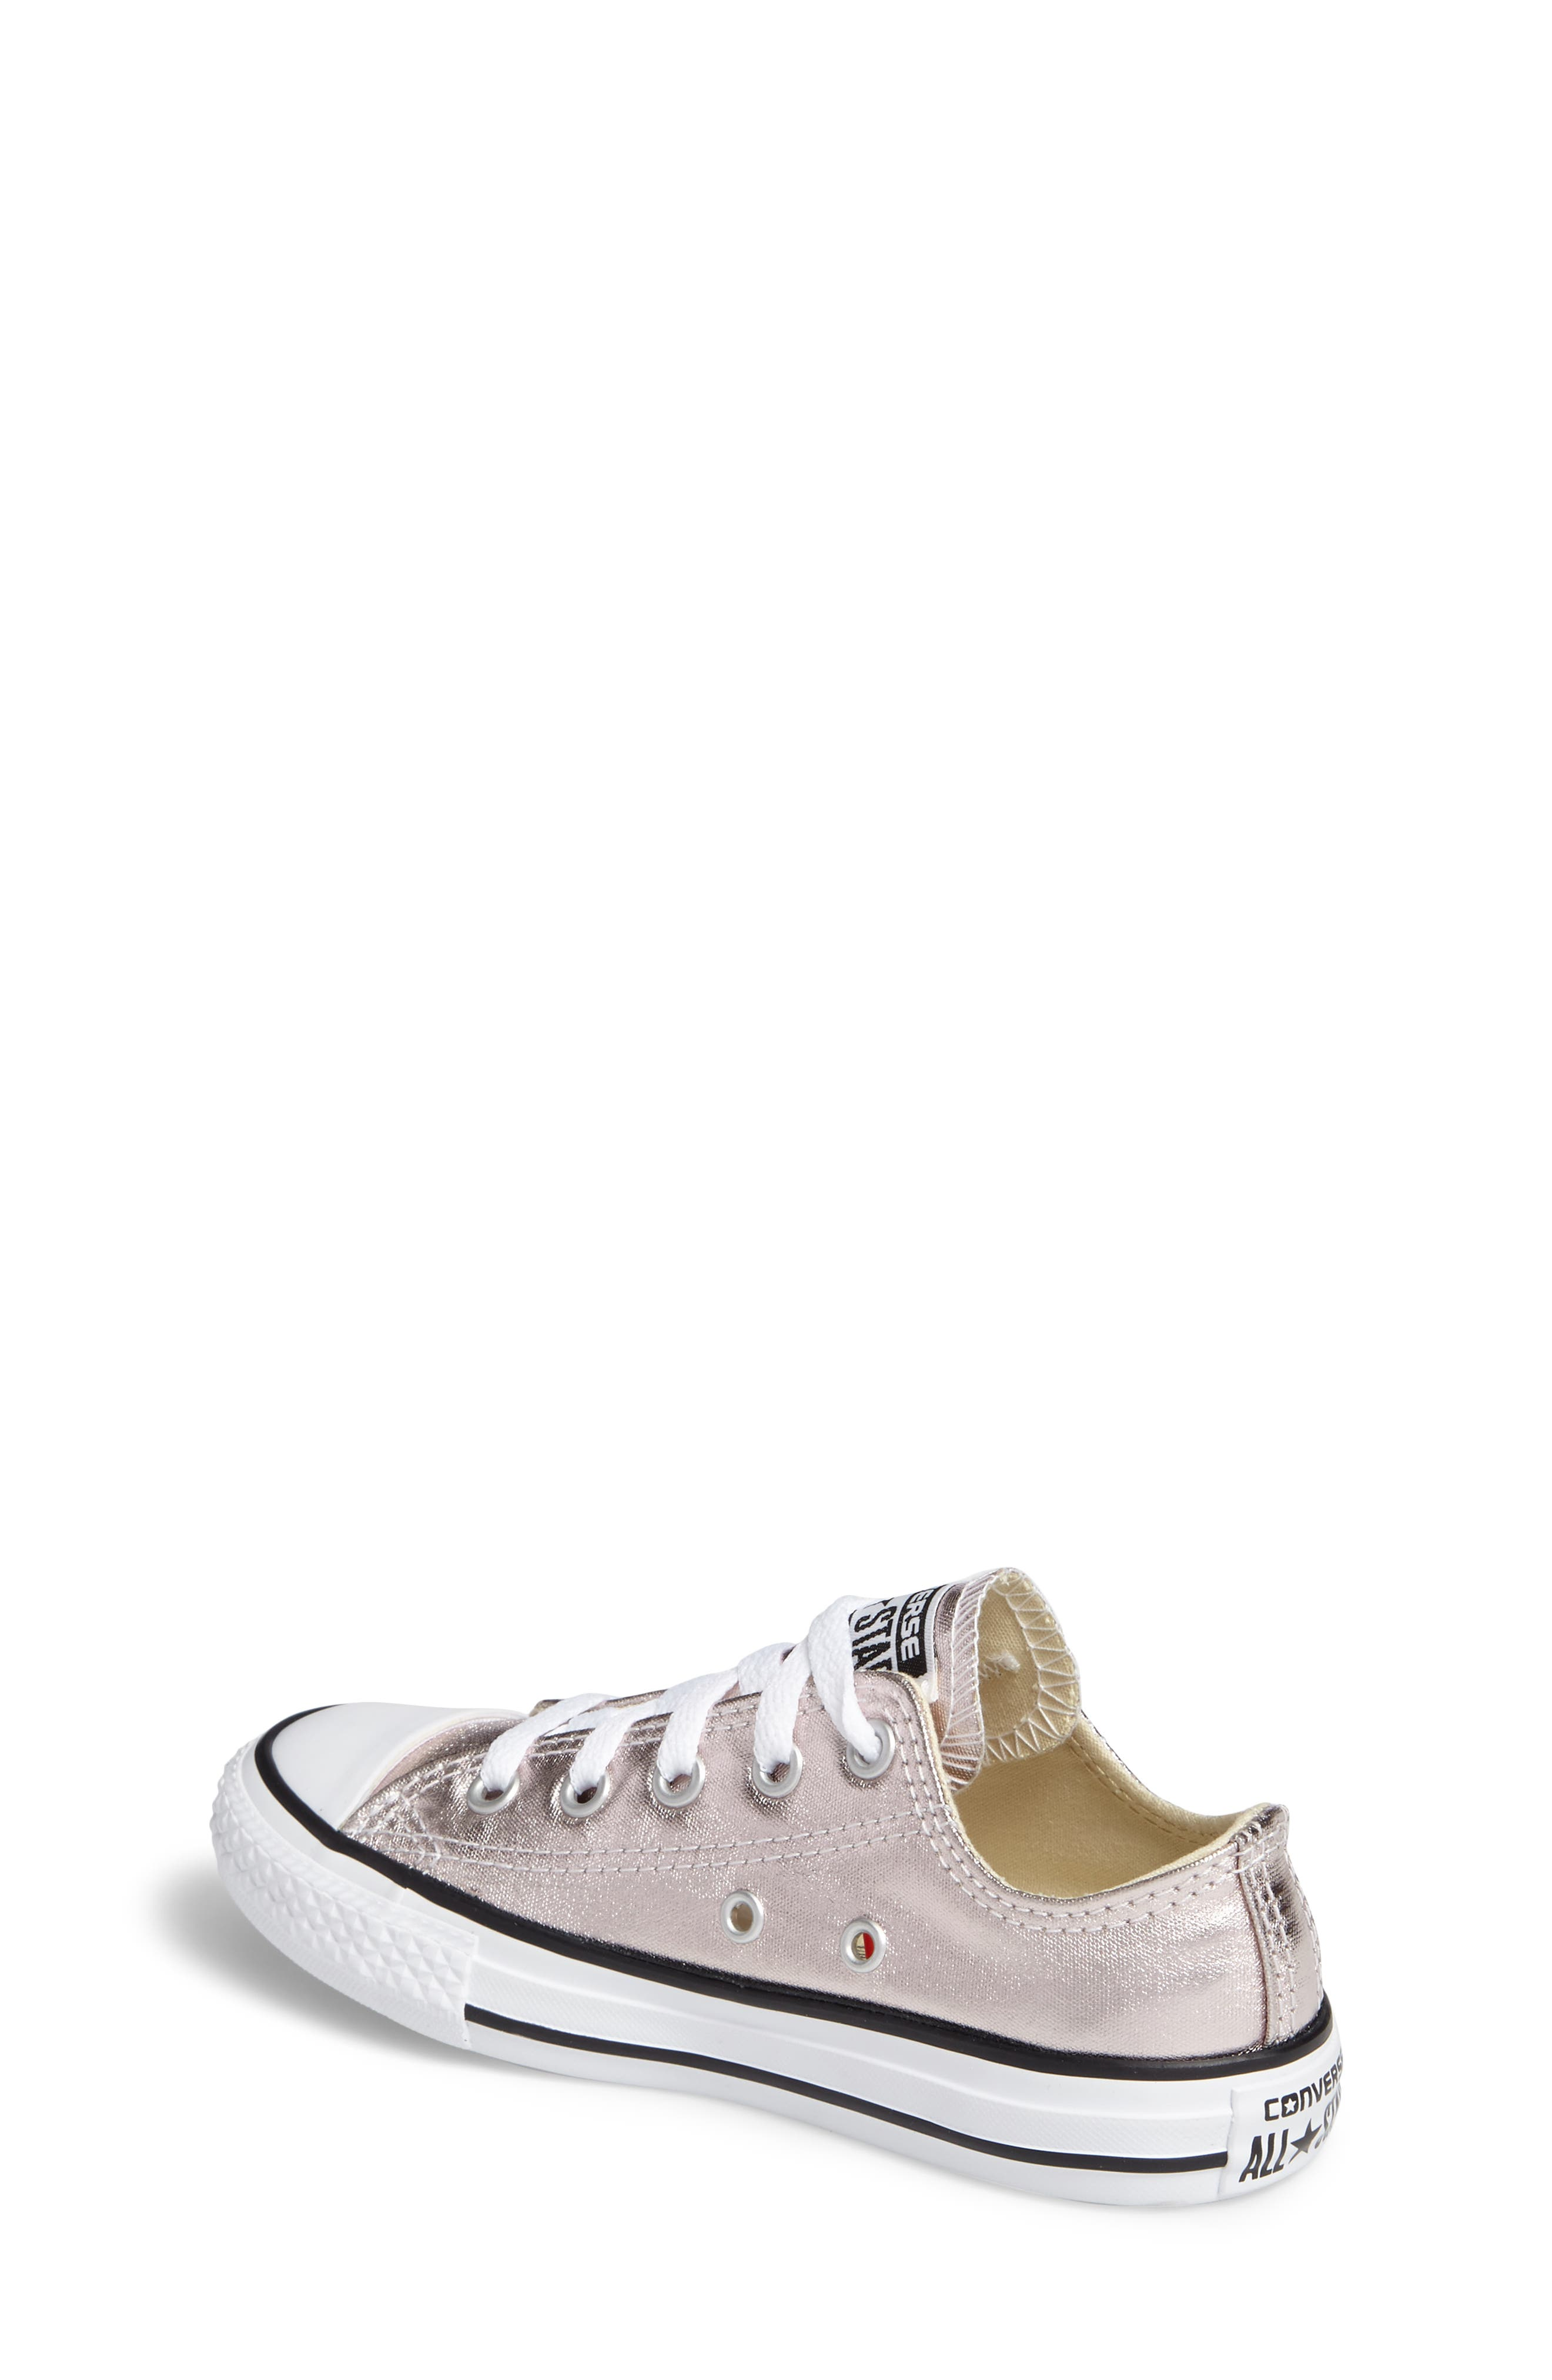 Chuck Taylor<sup>®</sup> All Star<sup>®</sup> Ox Metallic Low Top Sneaker,                             Alternate thumbnail 2, color,                             220